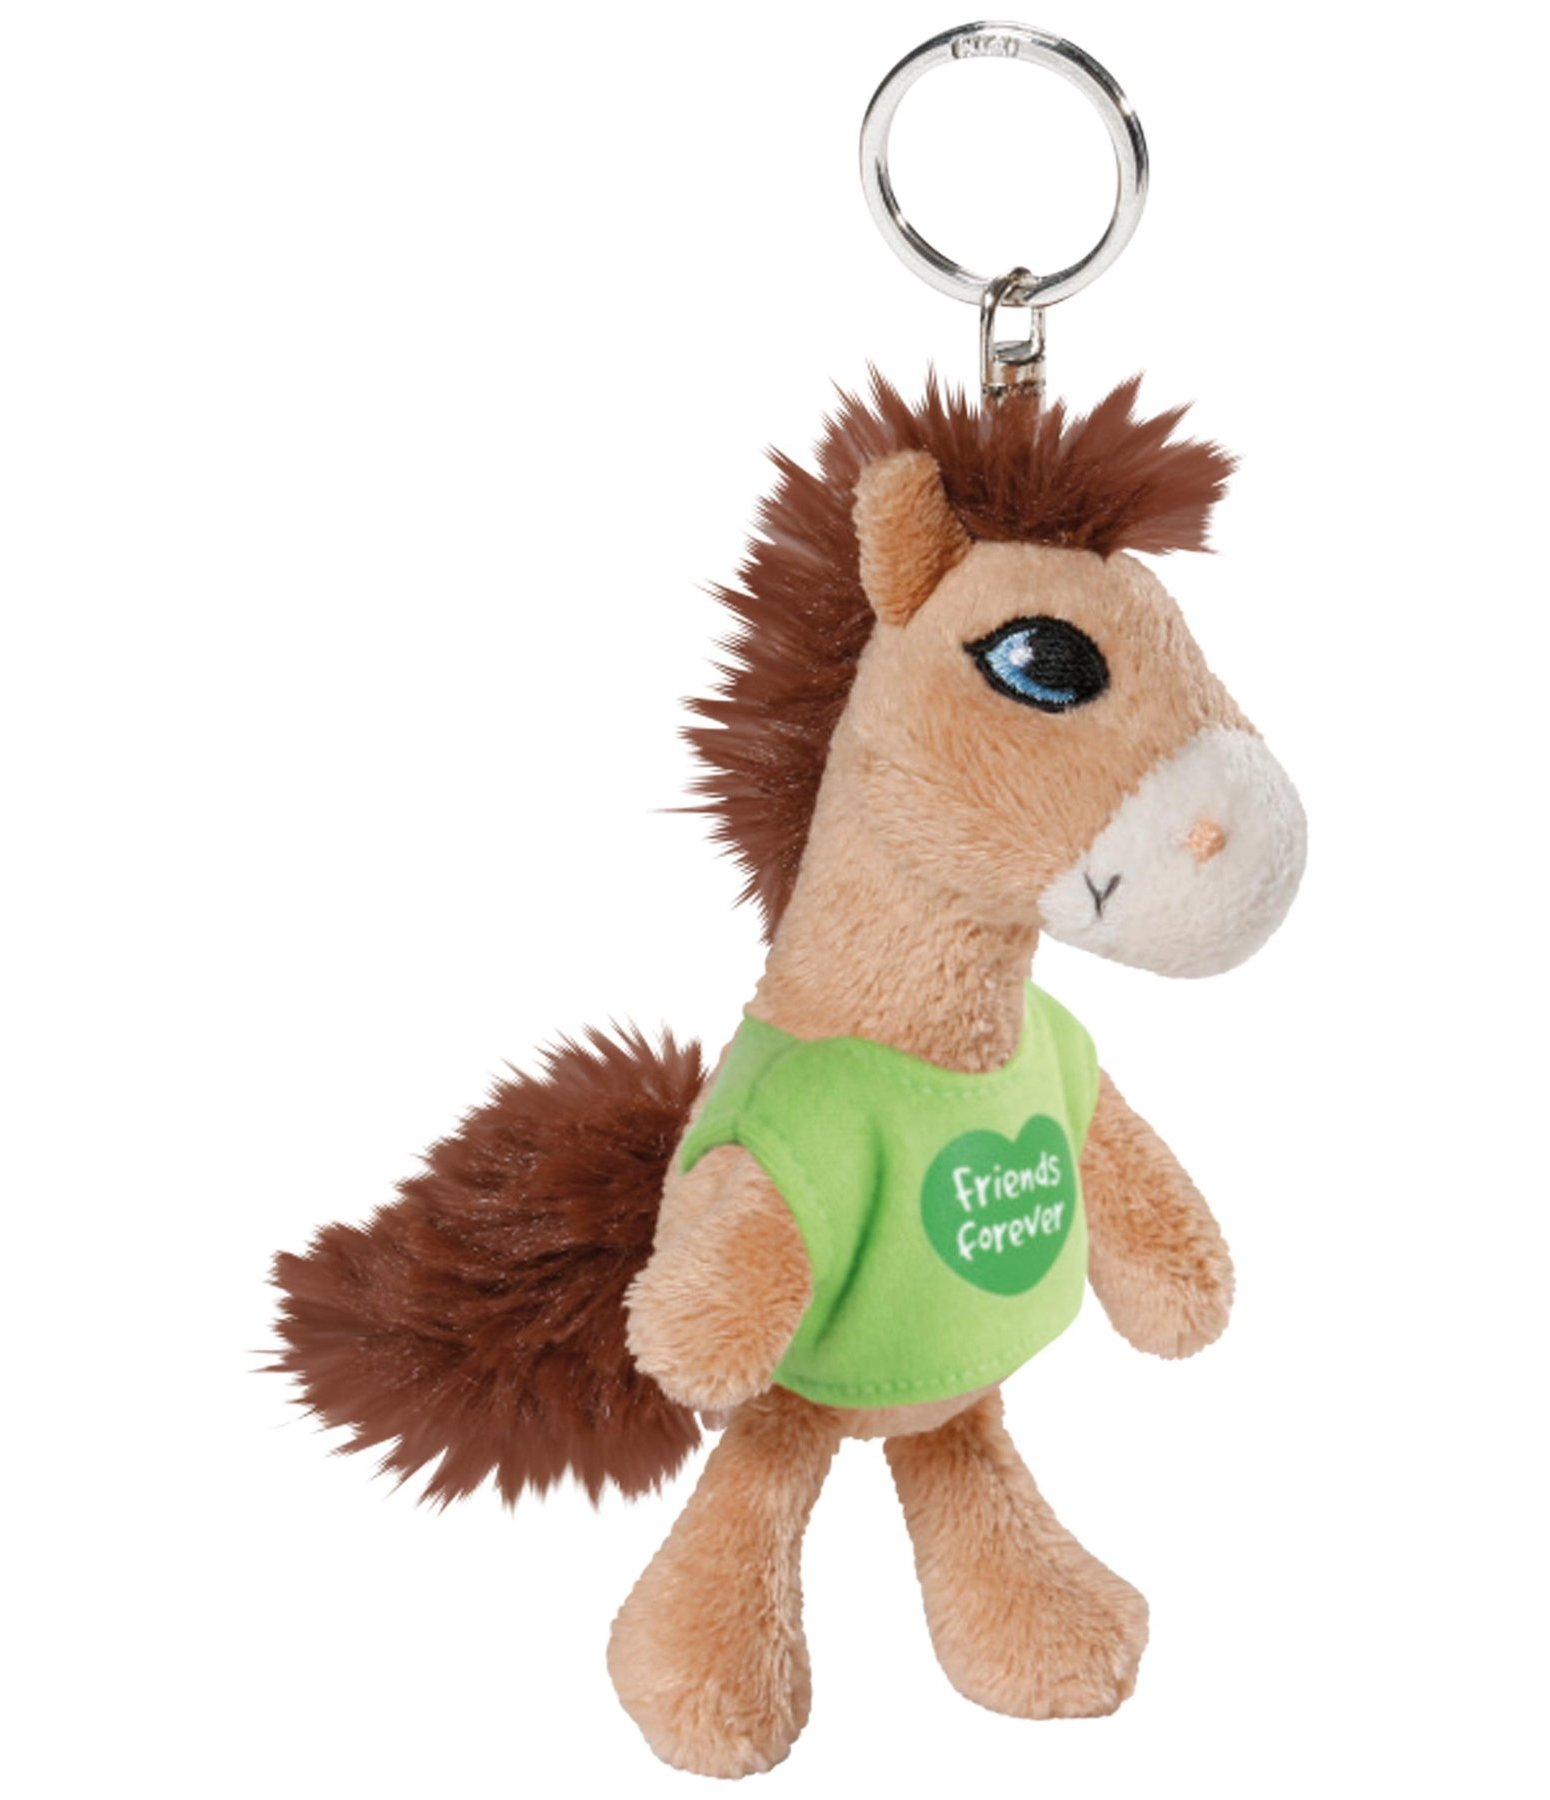 Key Chain Poetry - Horslies   Cuddly Toys - Kramer Equestrian f8e4884d3